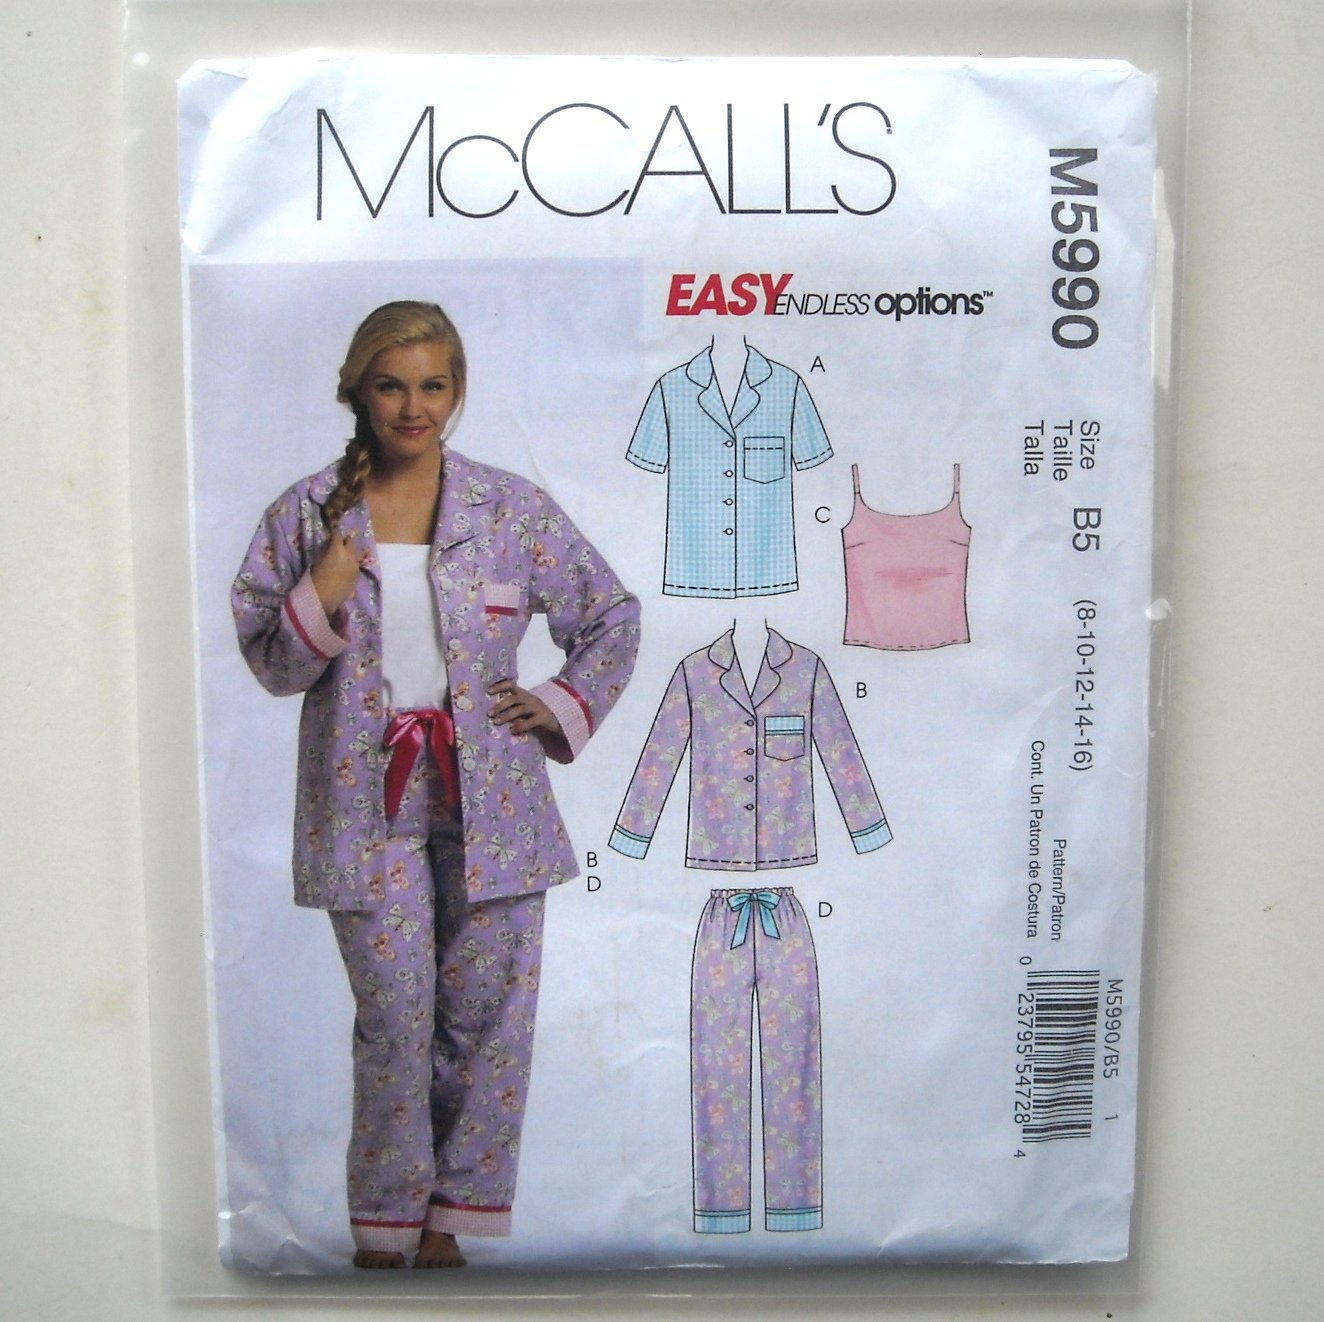 Misses Womens Tops Camisole Pants 8 10 12 14 16 Out Of Print McCalls Sewing Pattern M5990